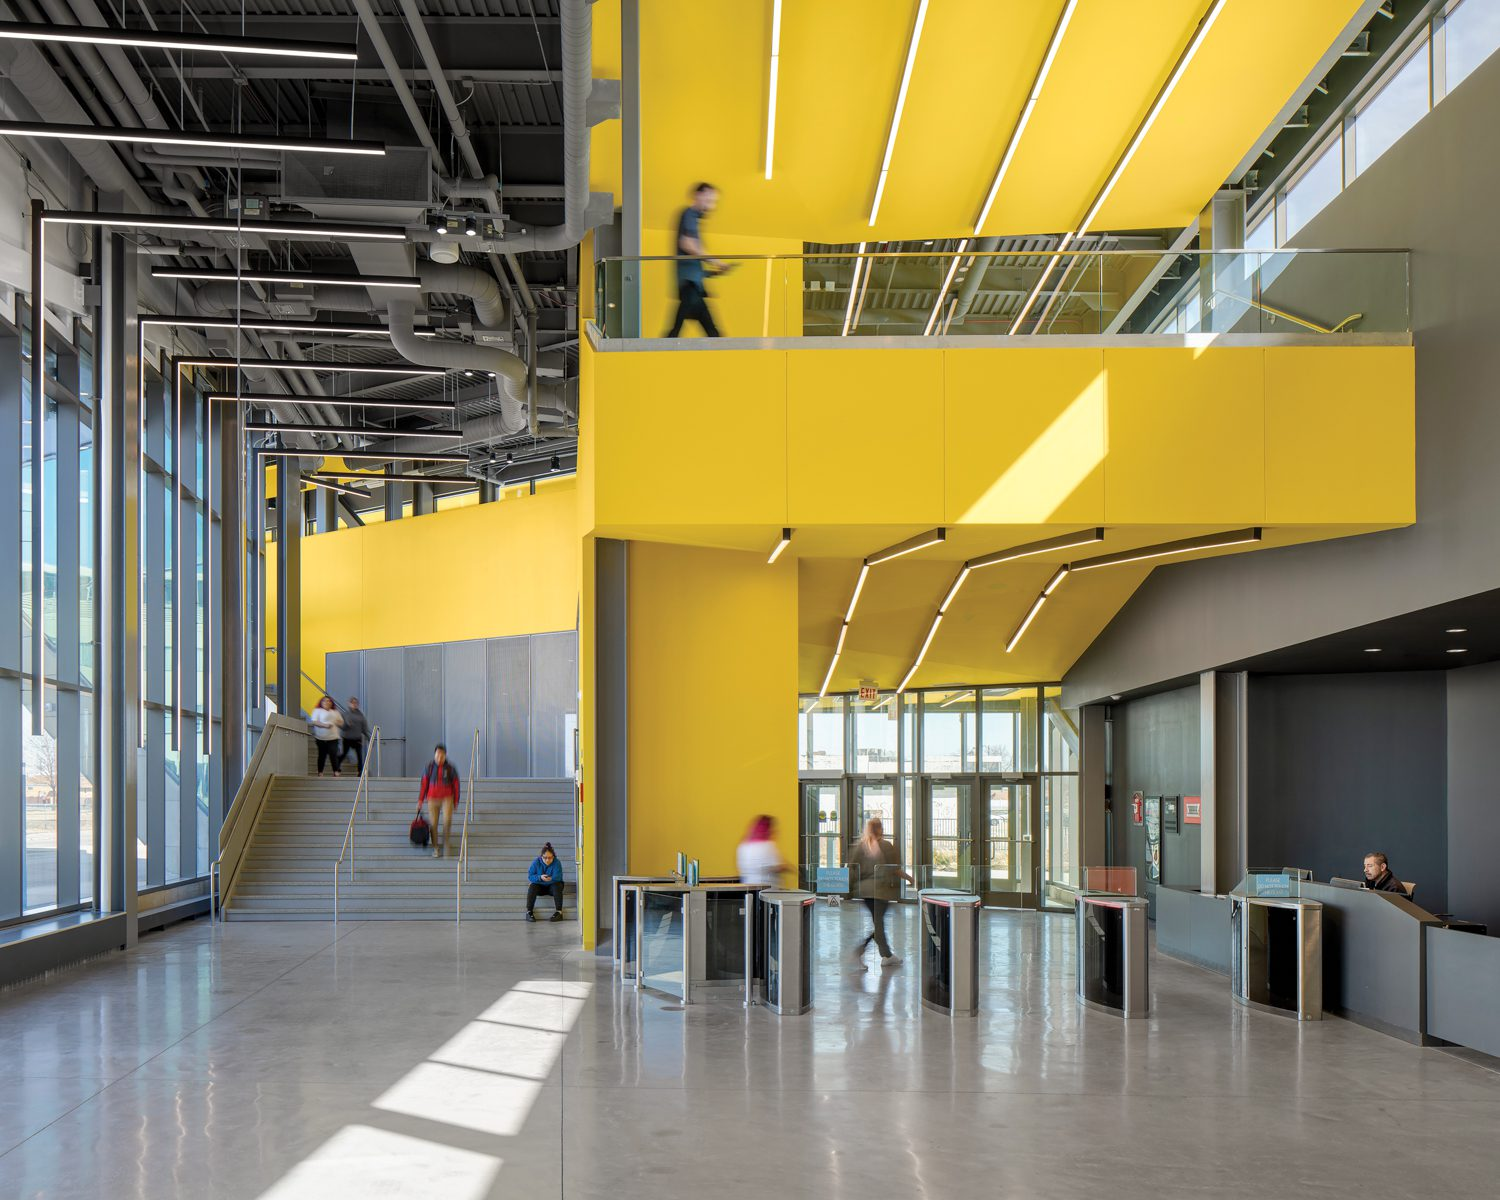 Daley College Manufacturing Technology & Engineering Center, Chicago, by JGMA.